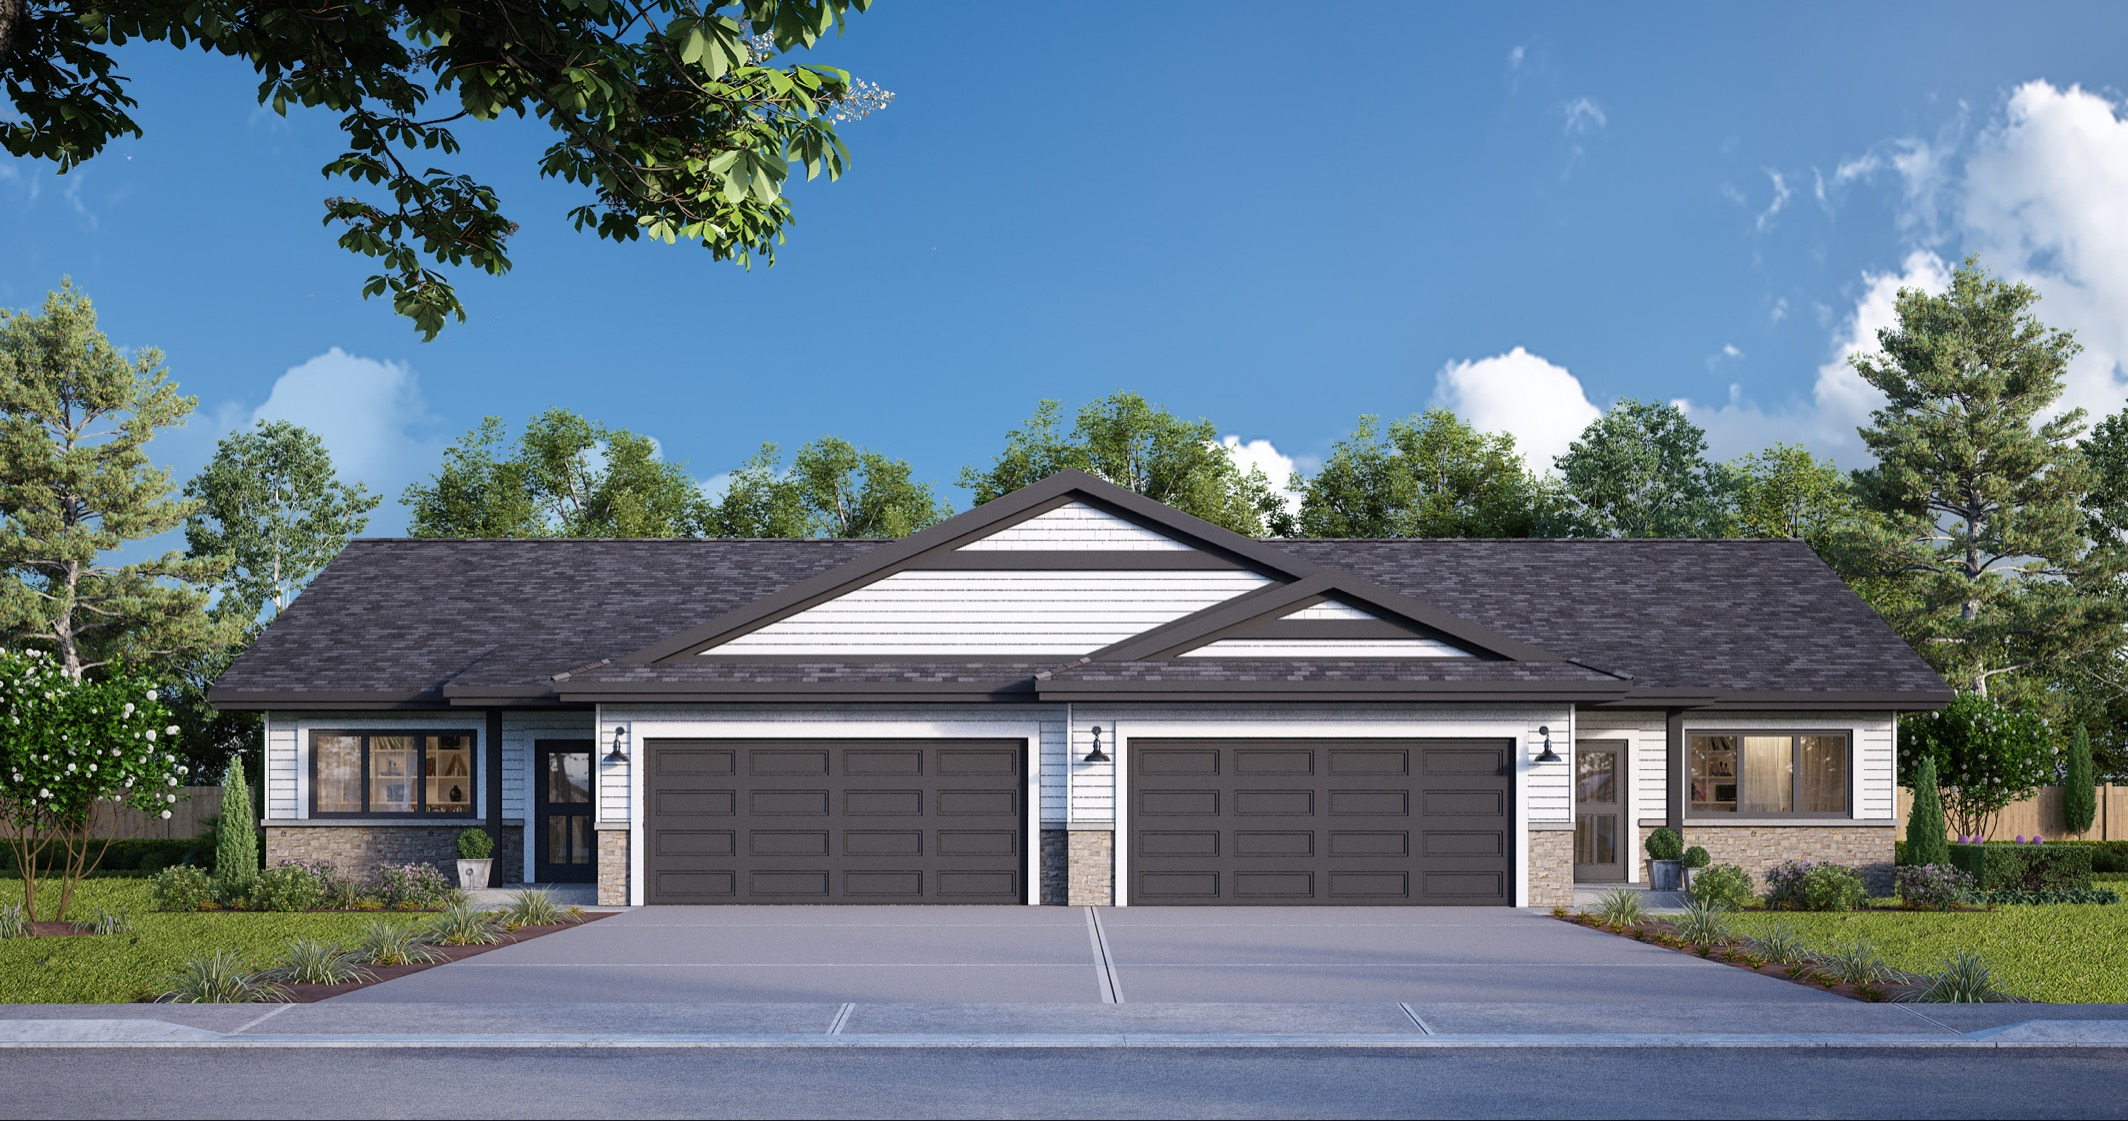 The Paired Homes at Summer Winds Cedar Lake - 2/3 BR 2BA - 1550+ sq/ft - Basement option available - Starting at $275,000